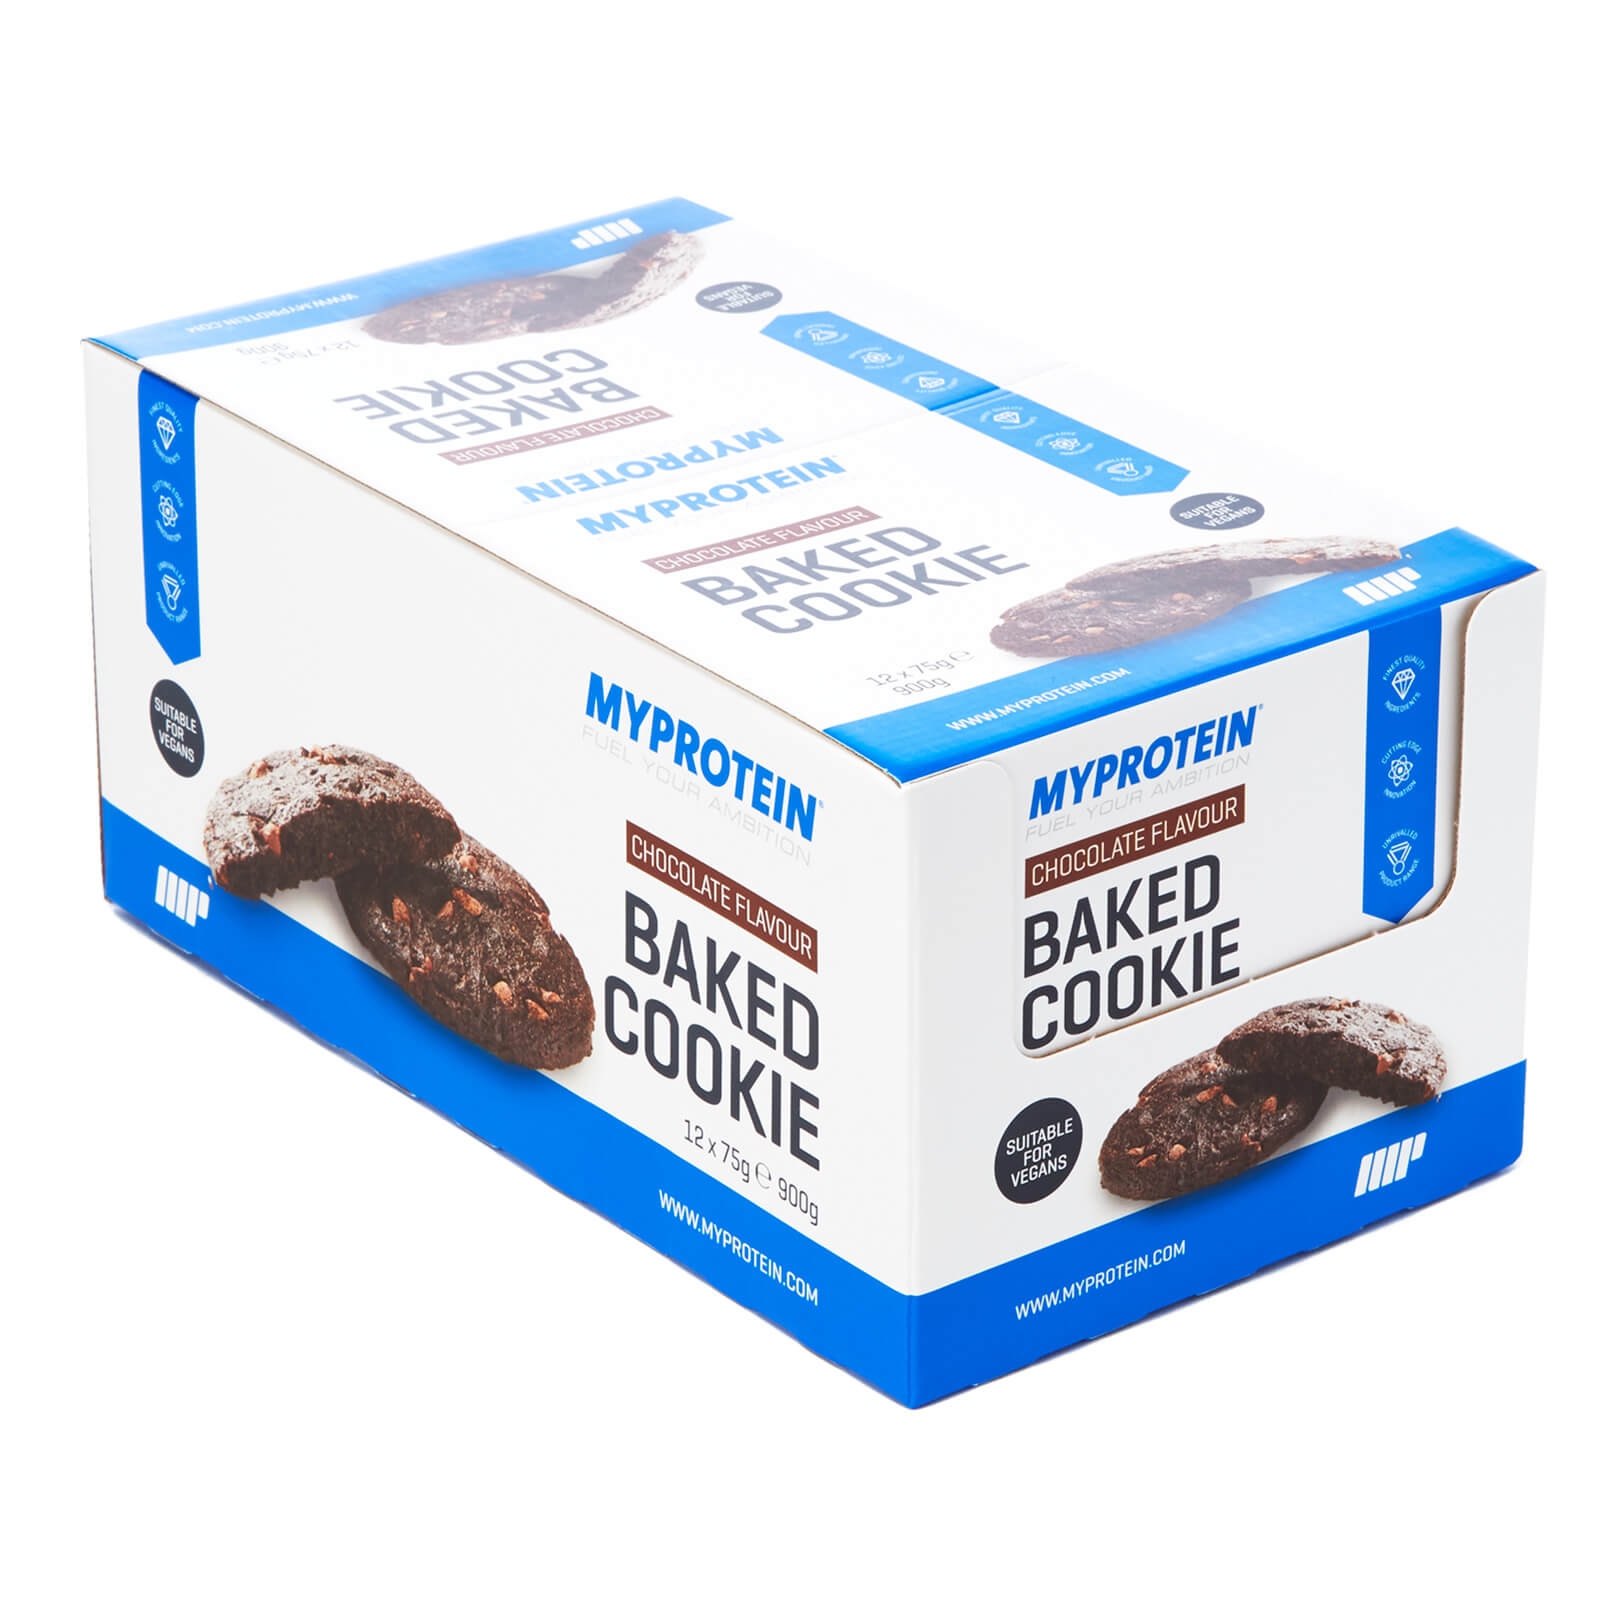 Baked Cookie, Chocolate, 12x75g